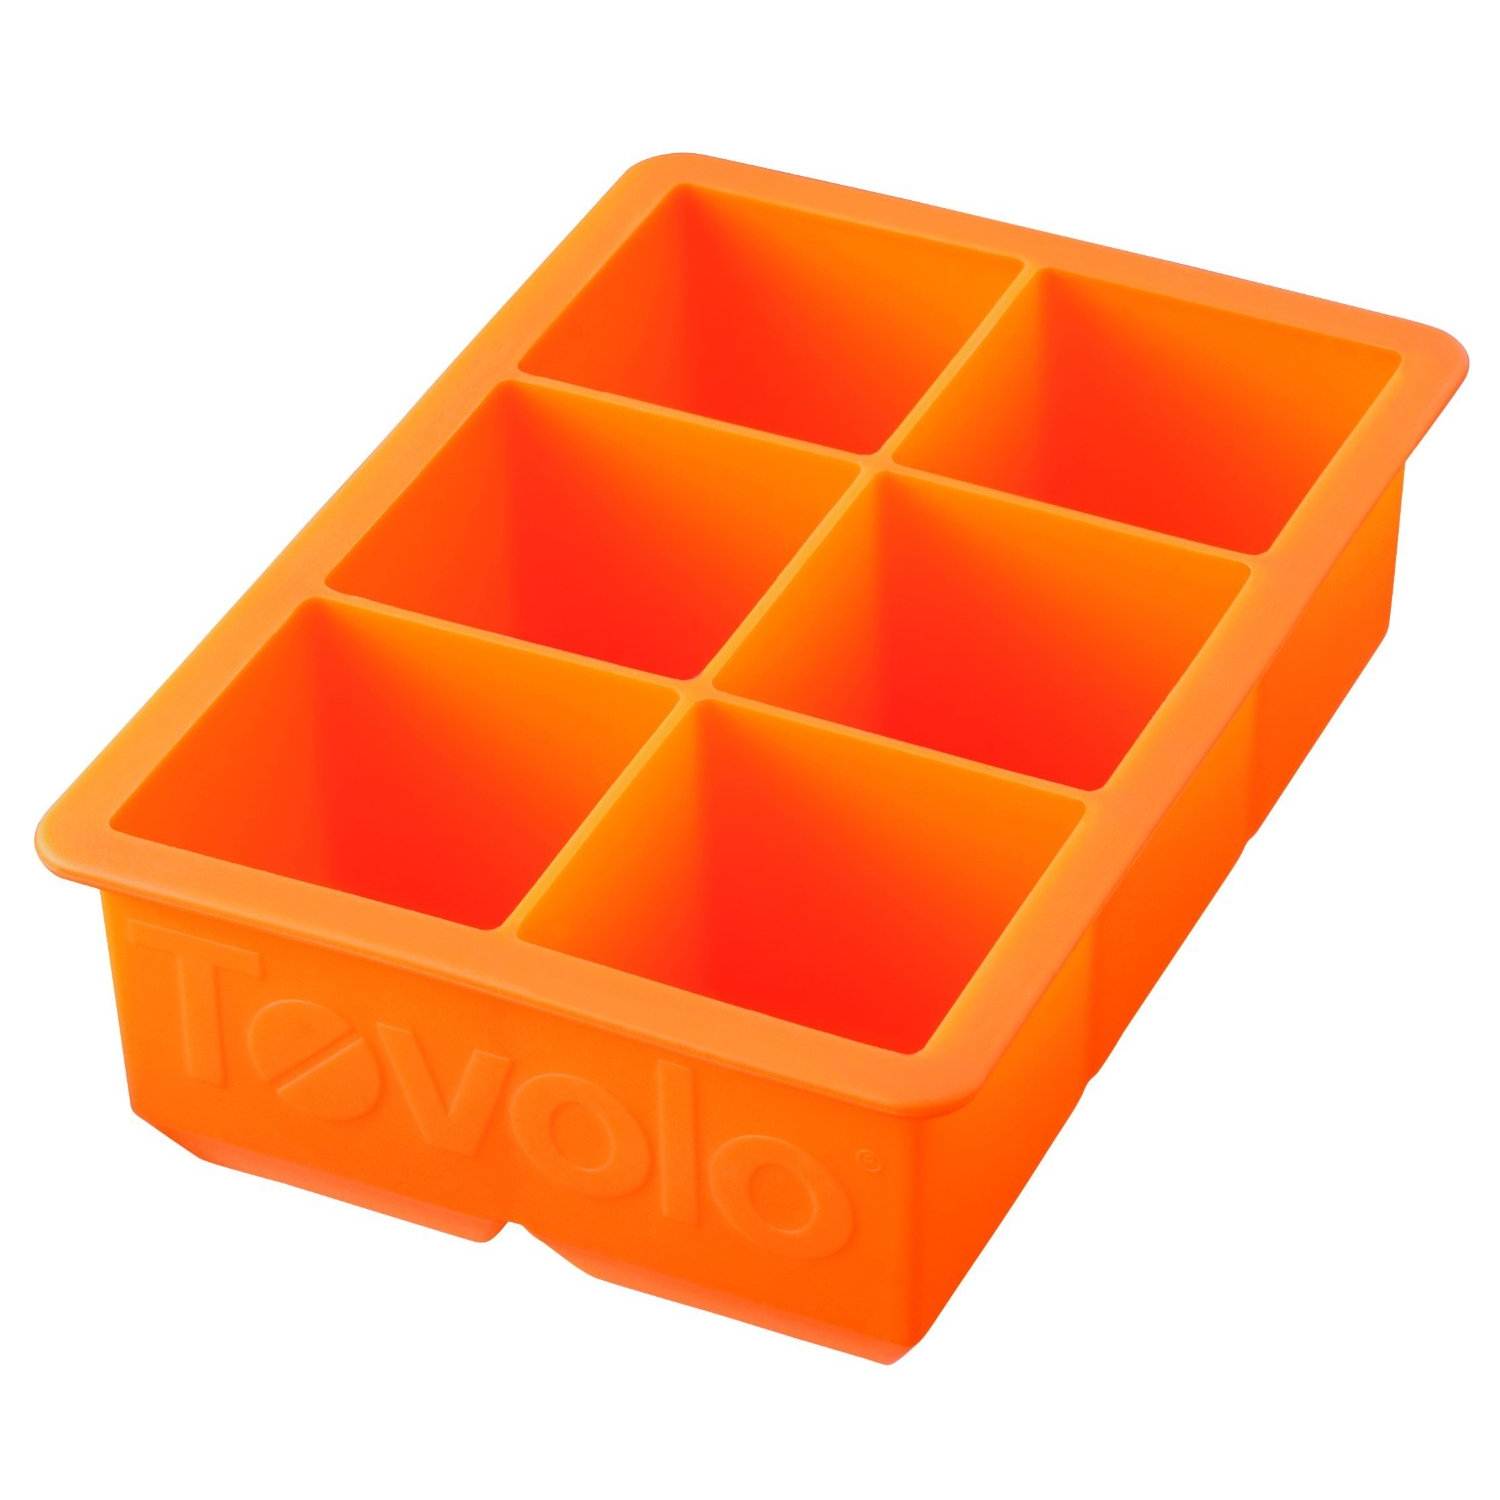 Tovolo King Cube Orange Peel Silicone Ice Tray